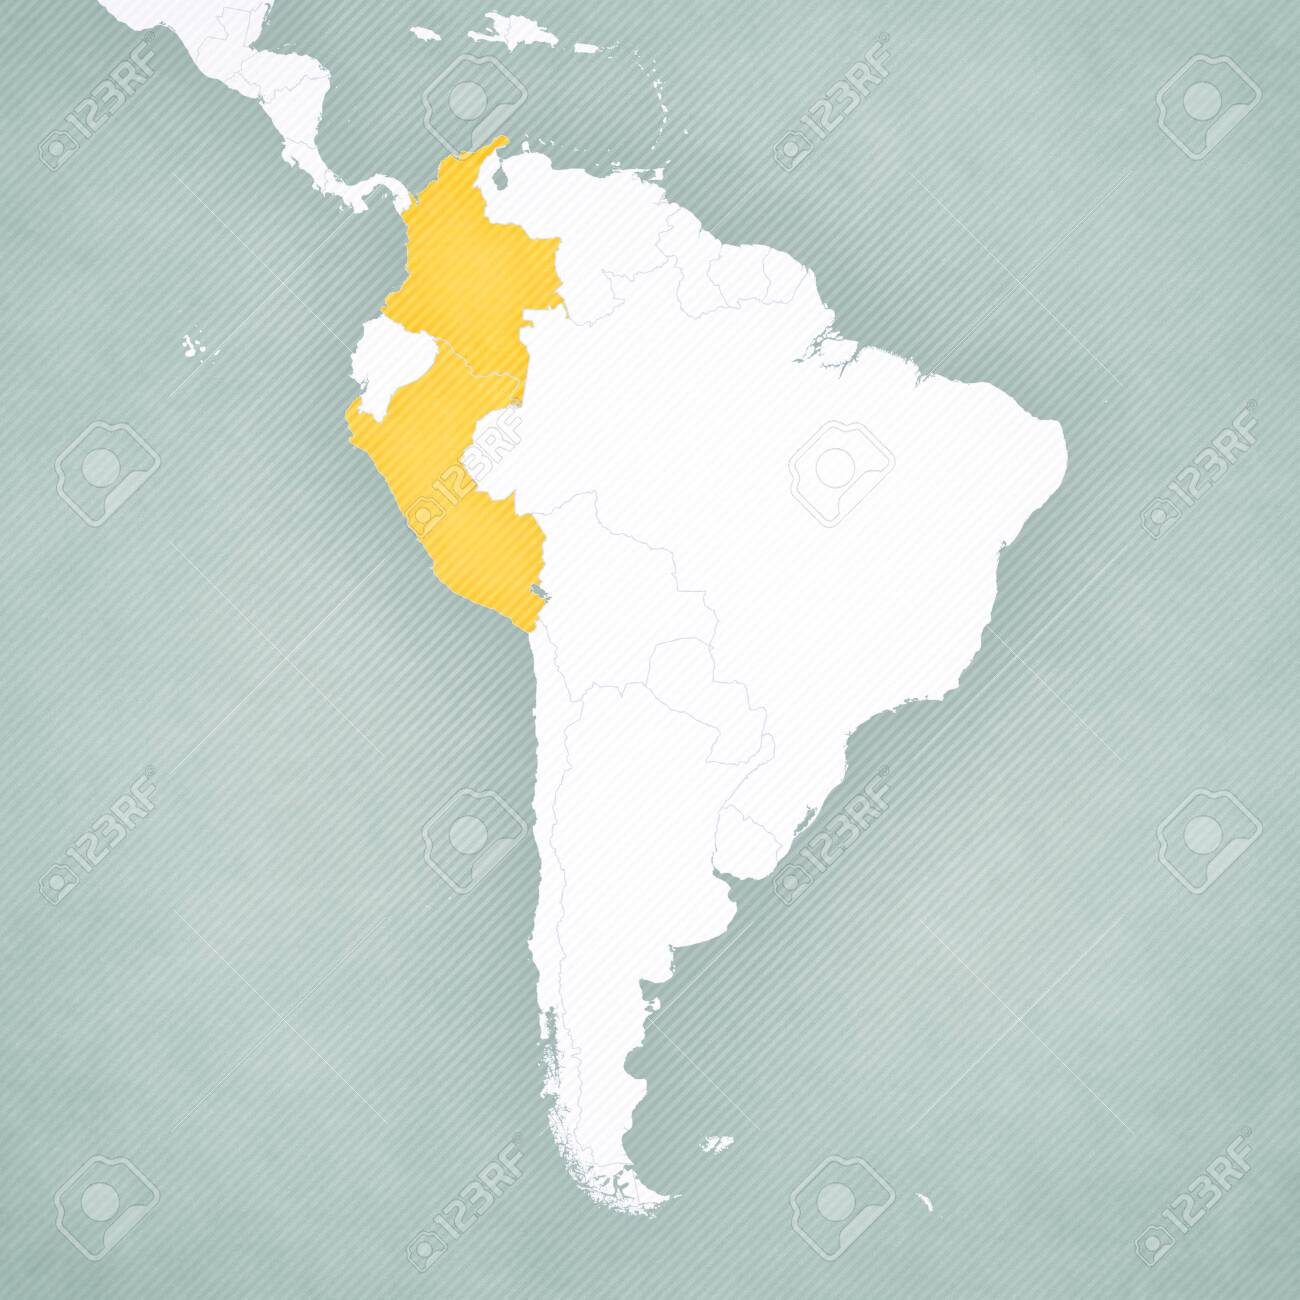 Colombia and Peru on the map of South America with softly striped..